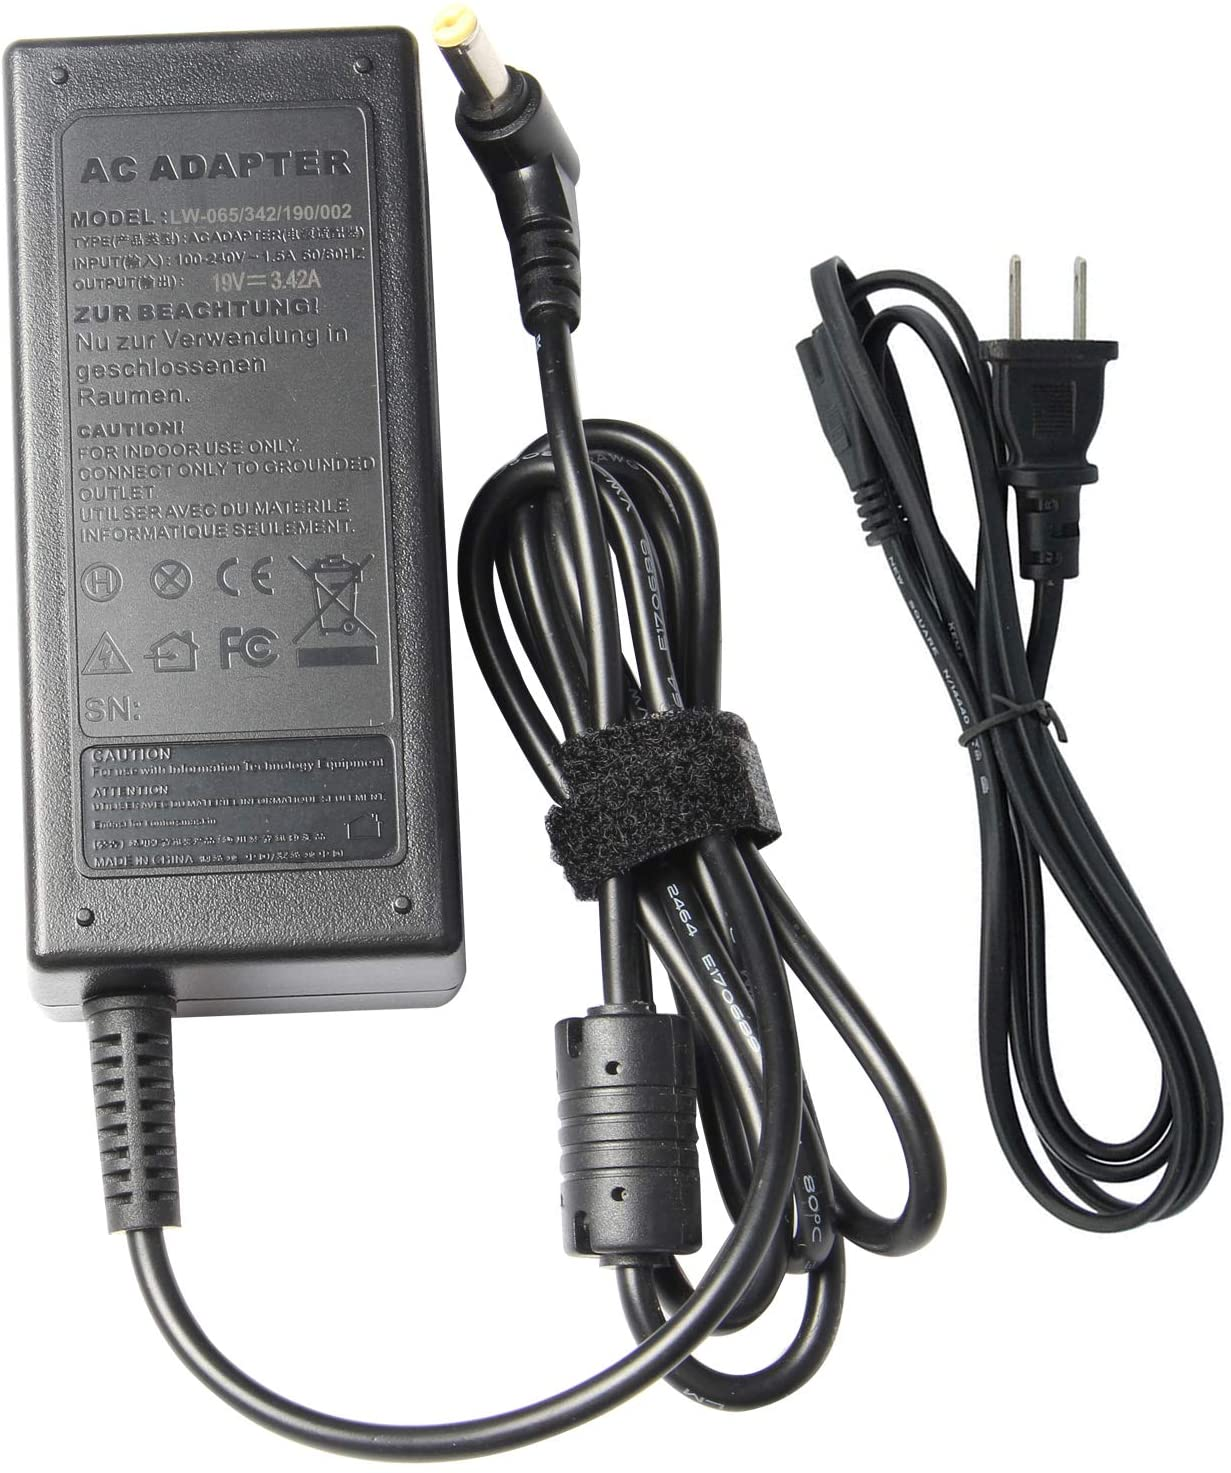 AC Doctor INC 19V 3.42A 65W AC Adapter Charger for Gateway NE51b10u NE51B10u NE56R11U NE56R12U NE56R10U NE71B06u NE56R37u NE56R31u Laptop Power Supply Cord 5.5x1.7mm